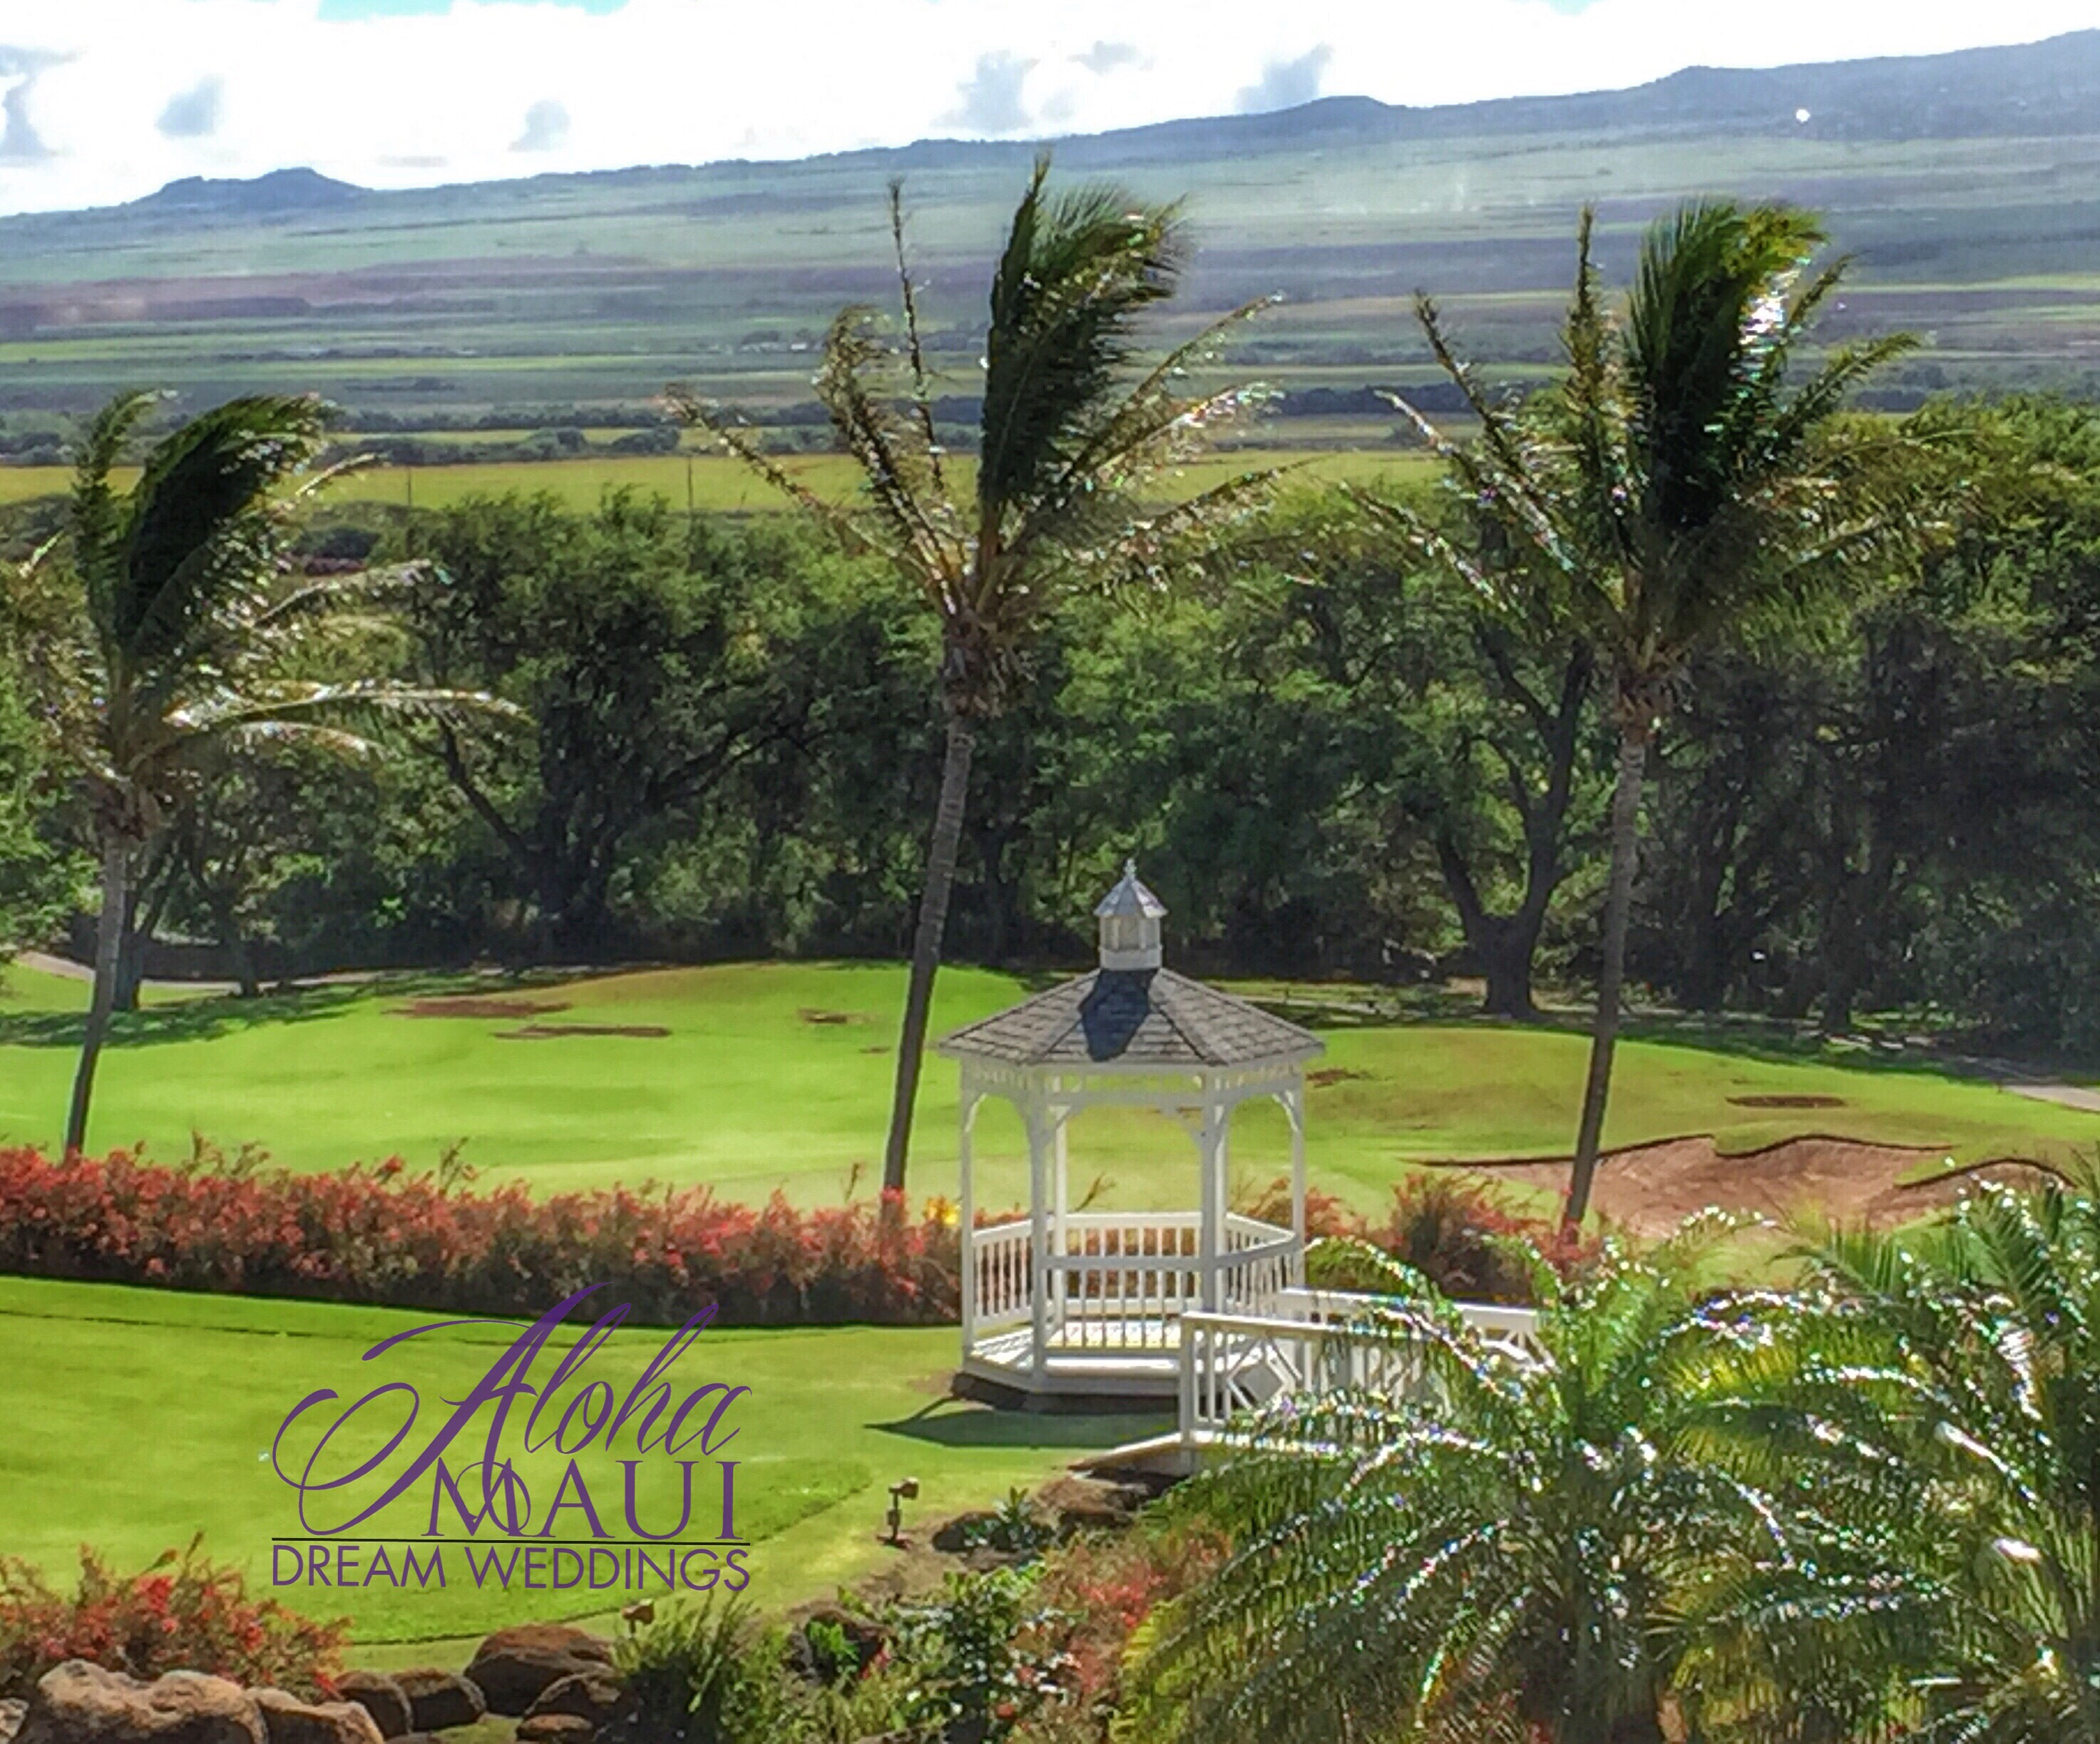 Maui wedding locations aloha maui dream weddings for Maui wedding locations